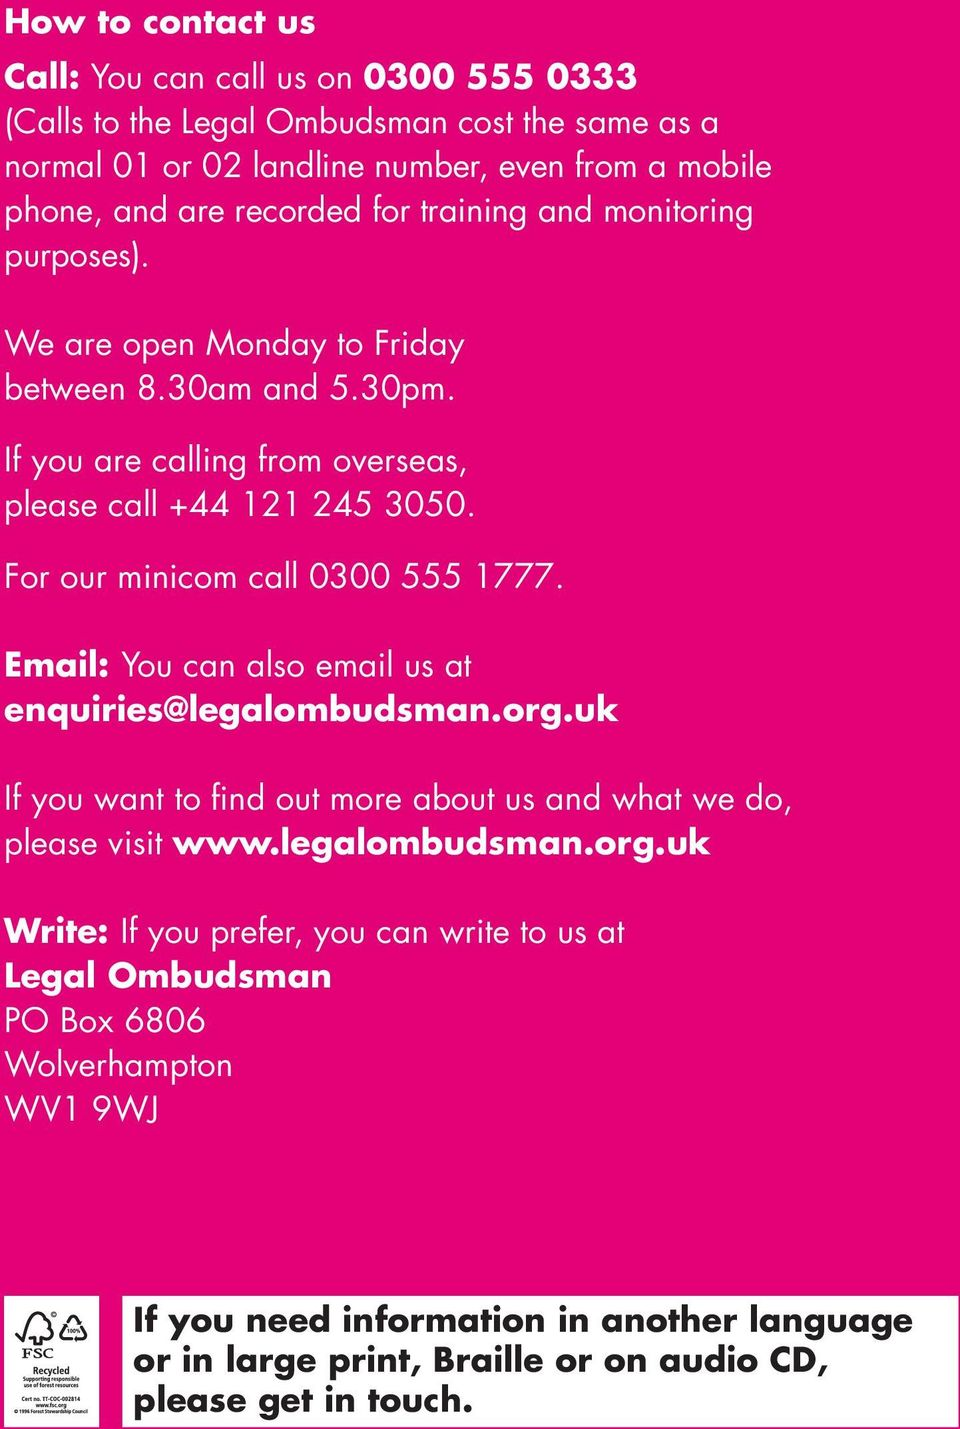 For our minicom call 0300 555 1777. Email: You can also email us at enquiries@legalombudsman.org.uk If you want to find out more about us and what we do, please visit www.